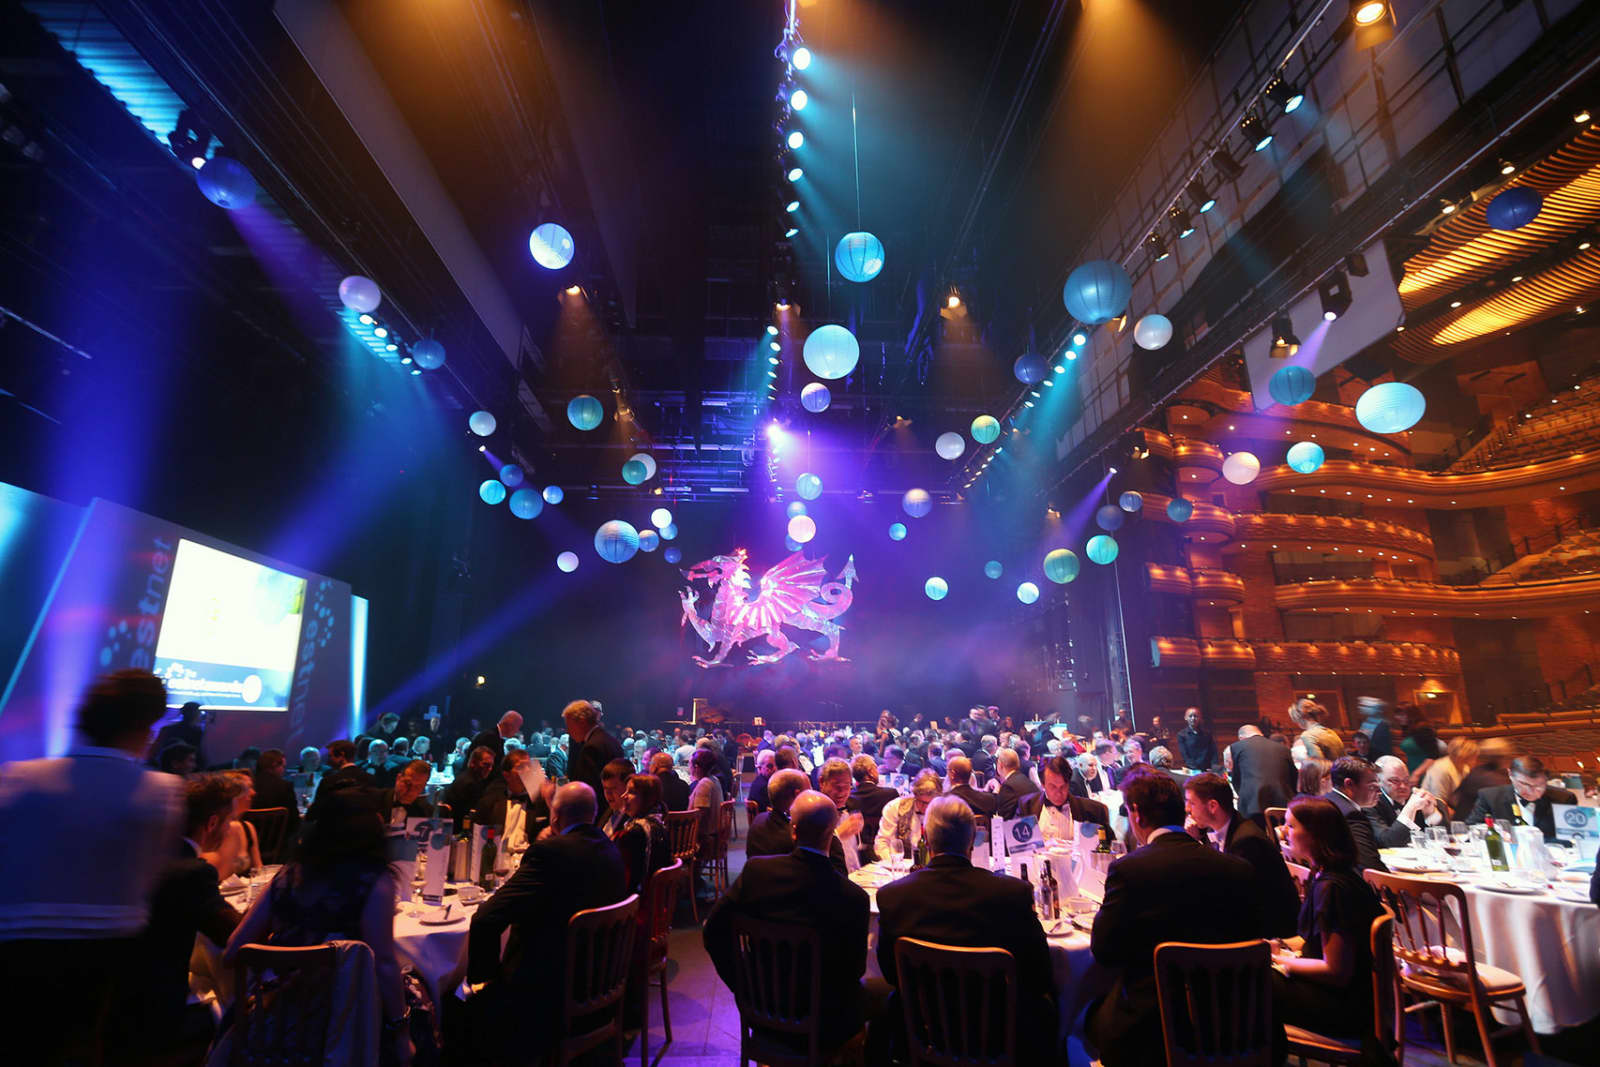 Gala dinners on the stage in the Donald Gordon Theatre